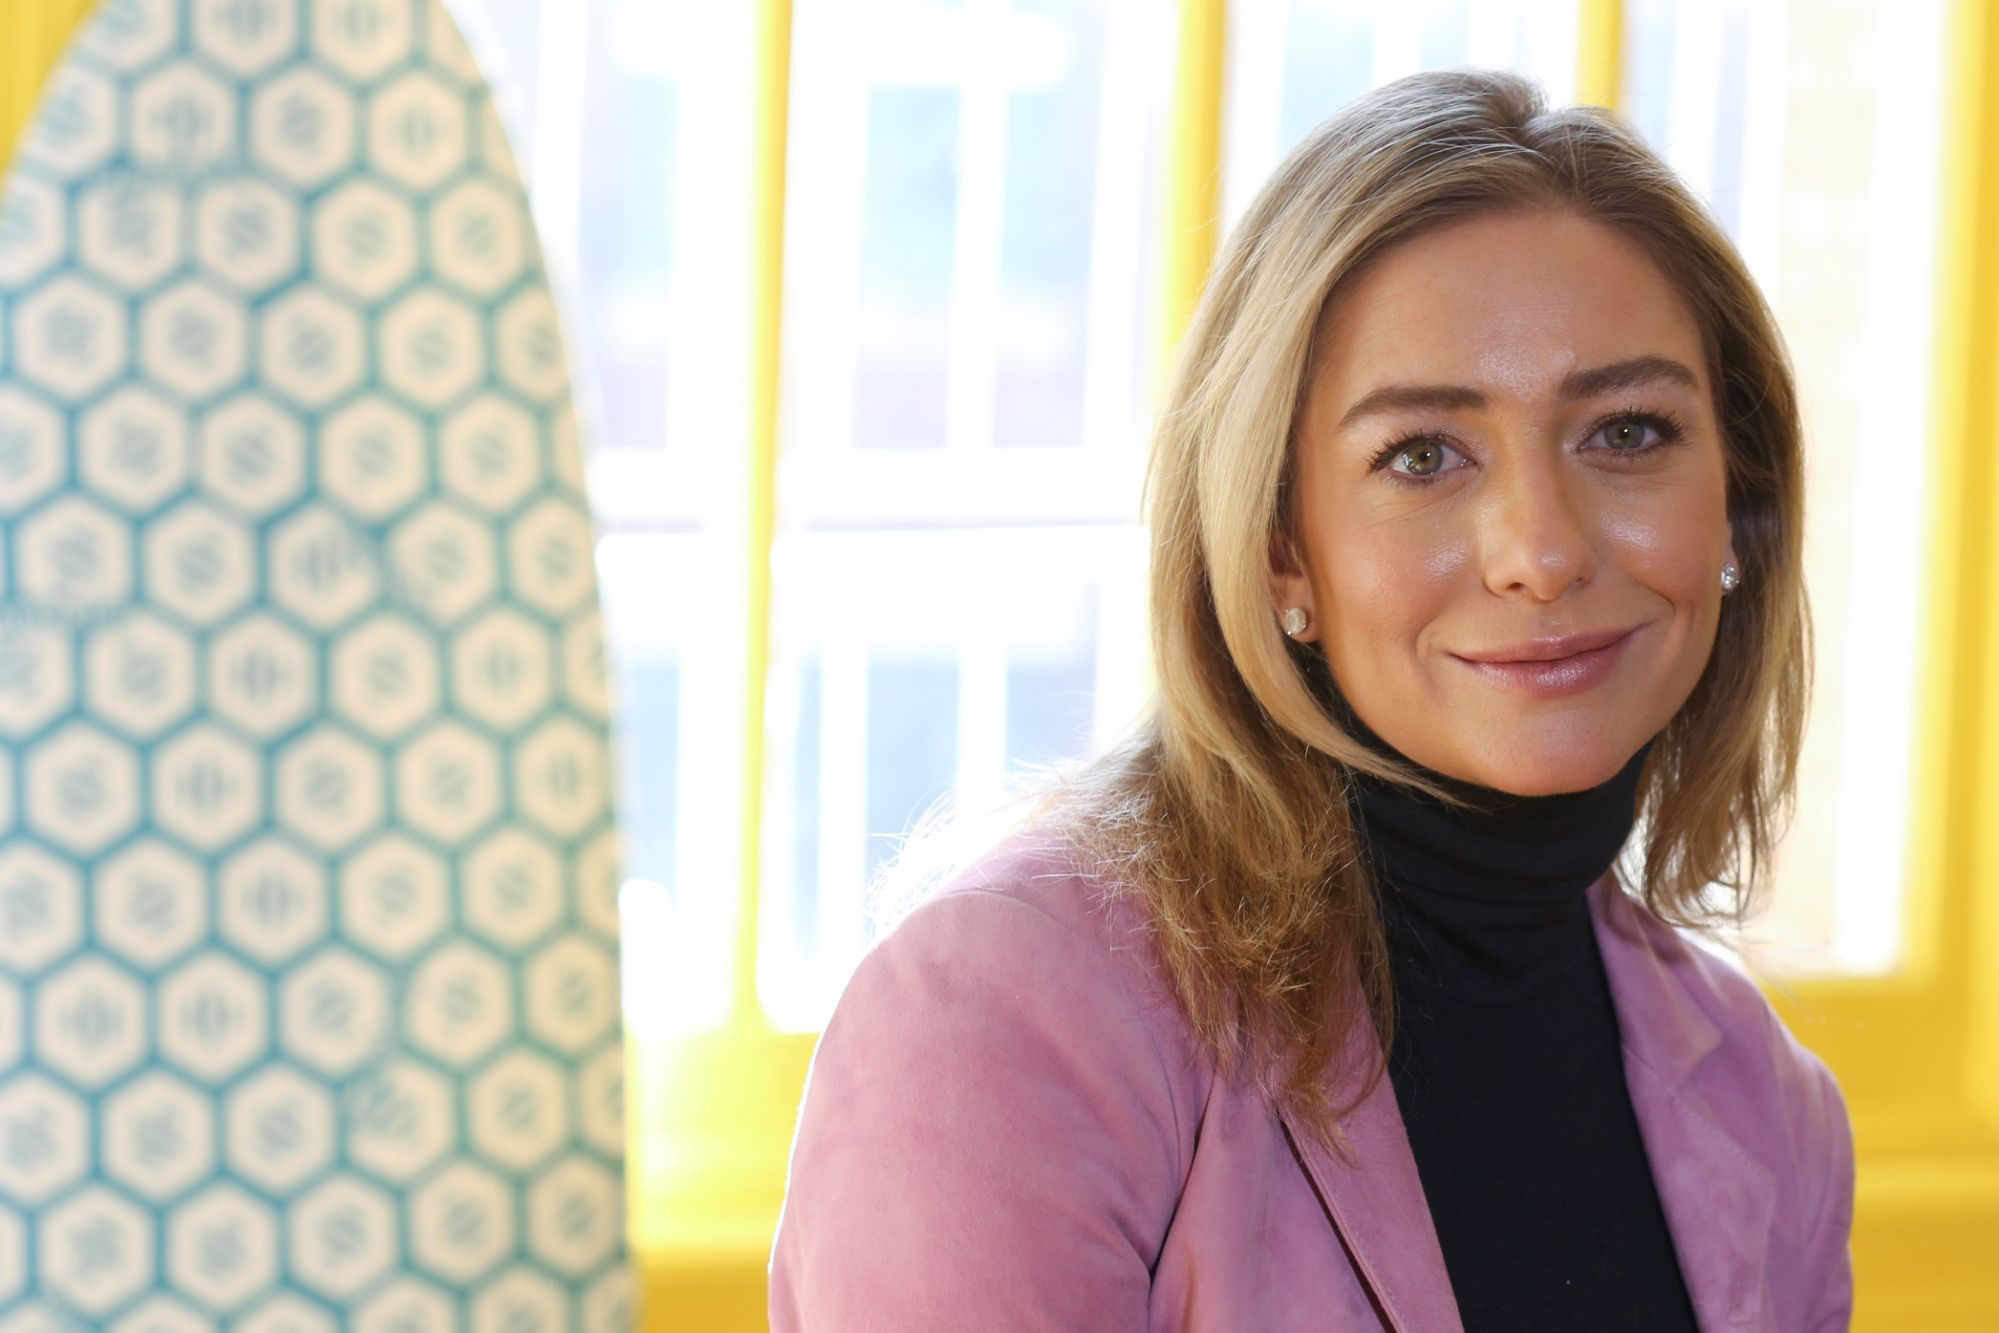 bumble-goes-public;-ceo-whitney-wolfe-herd-says-'love-is-profitable'